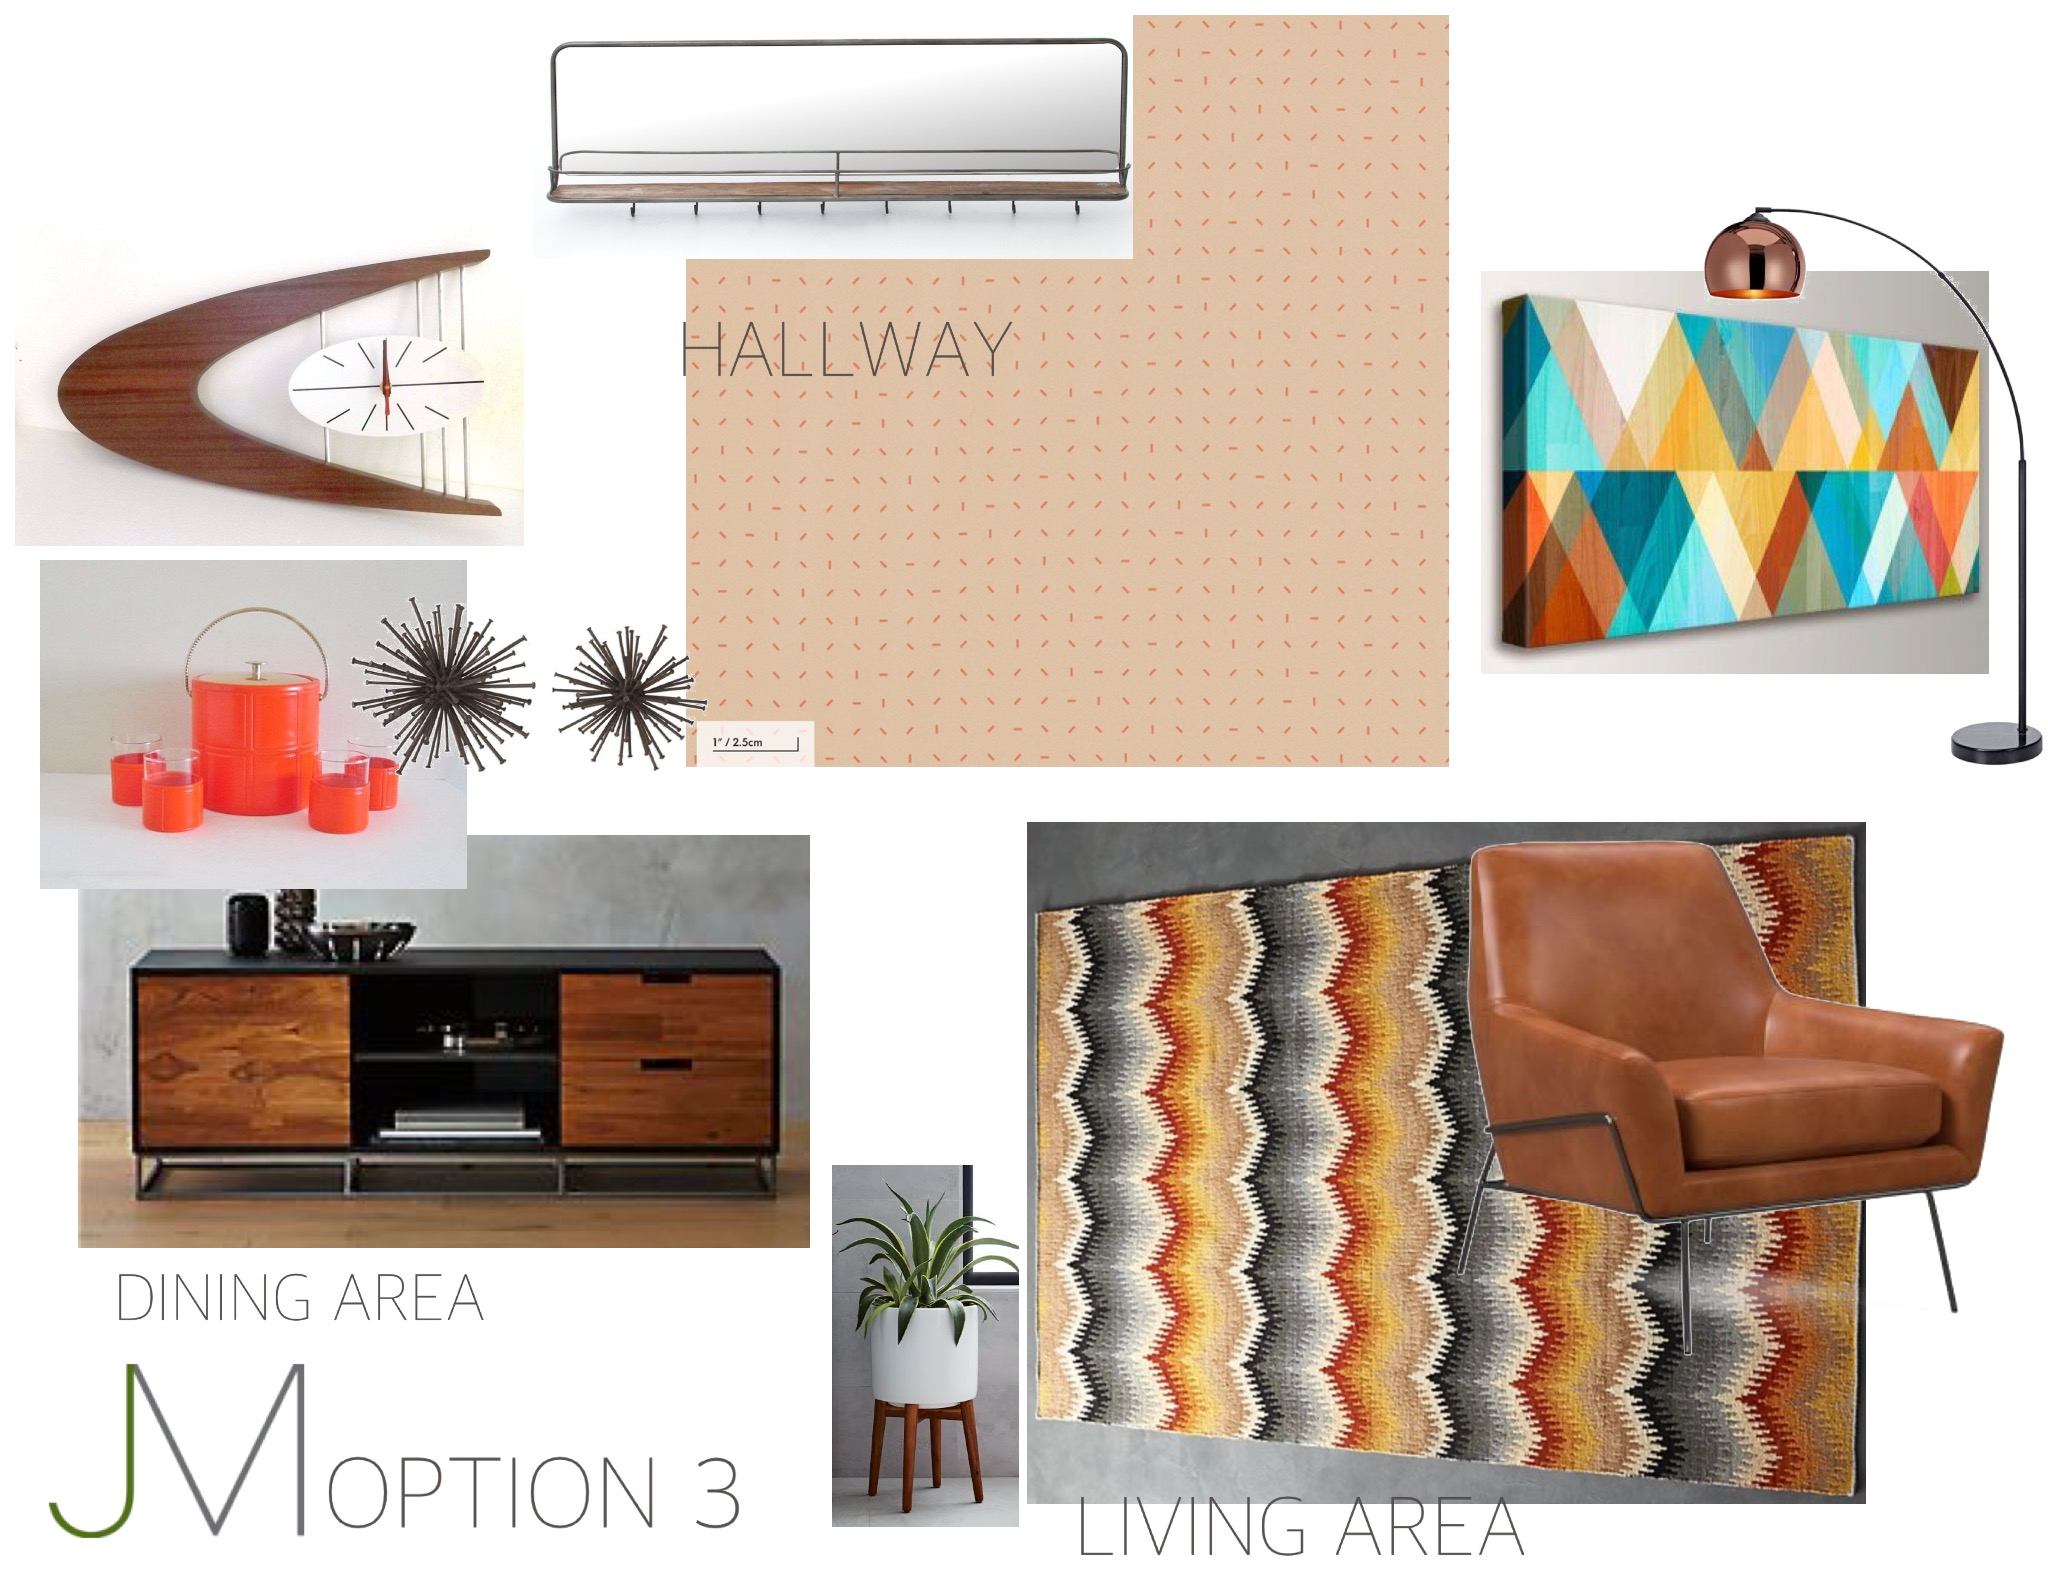 Space Age Superstar - Genuine, vintage accessories such as wall clocks and mini-bar must-haves compliment and high contrast concept of dark wood, technicolor wall art and leather furniture.